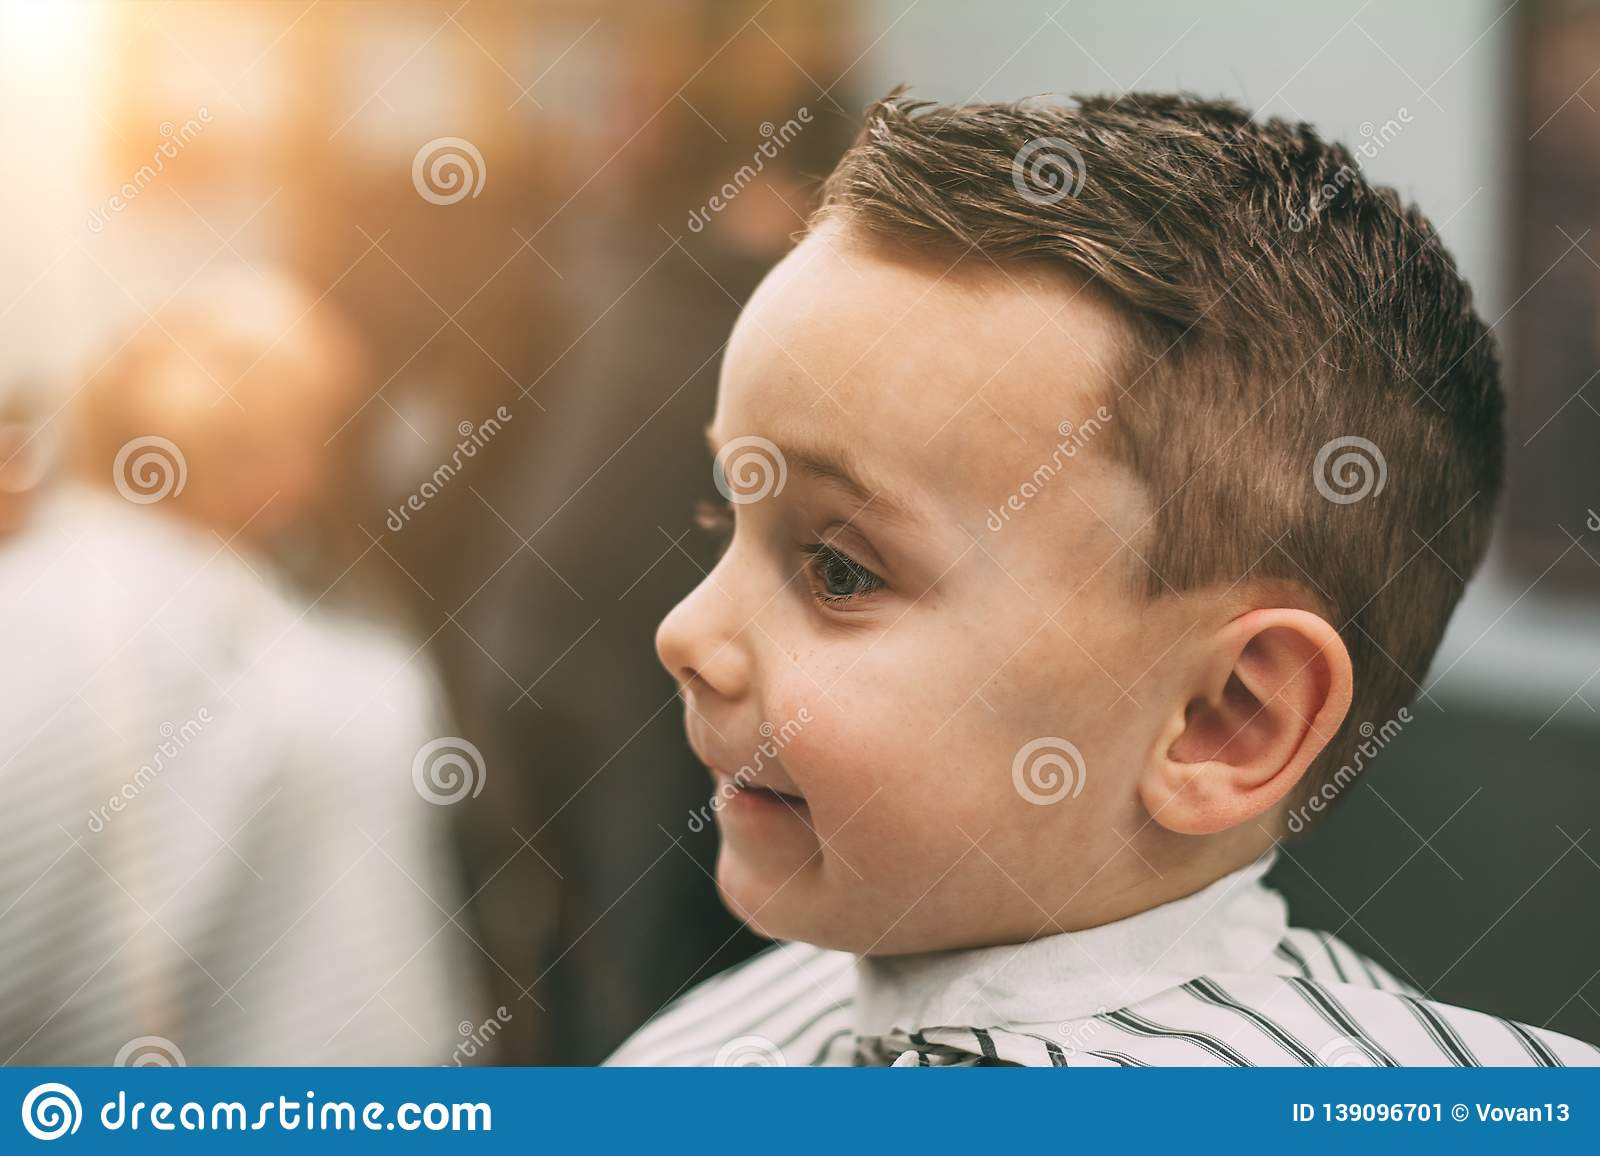 The Child Is Being Cut Hairstyles Stock Image - Image of ...